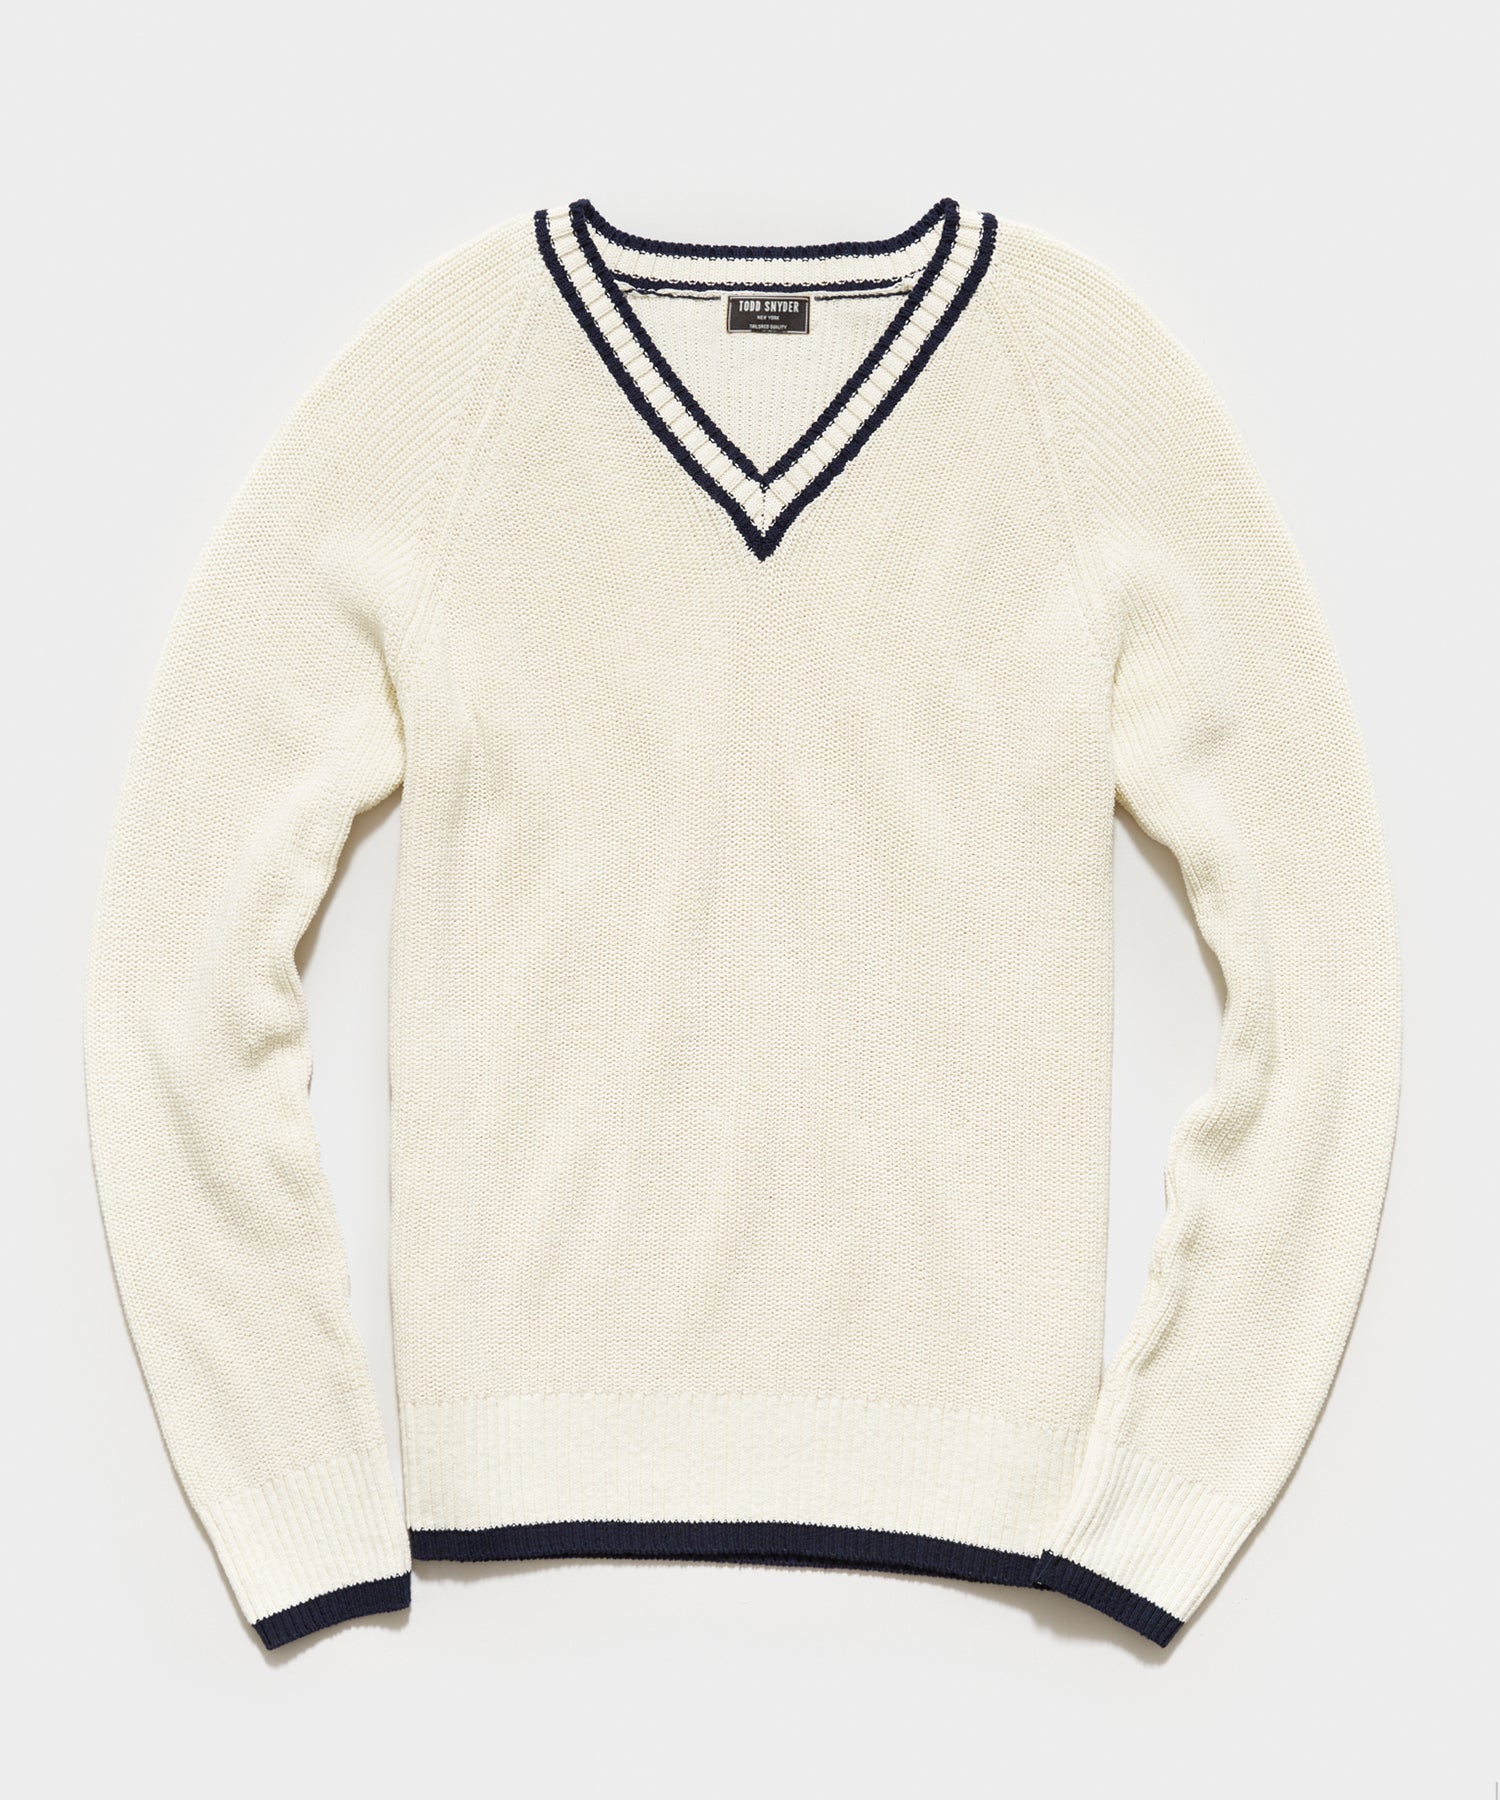 Italian Cotton Cricket Sweater in Ivory